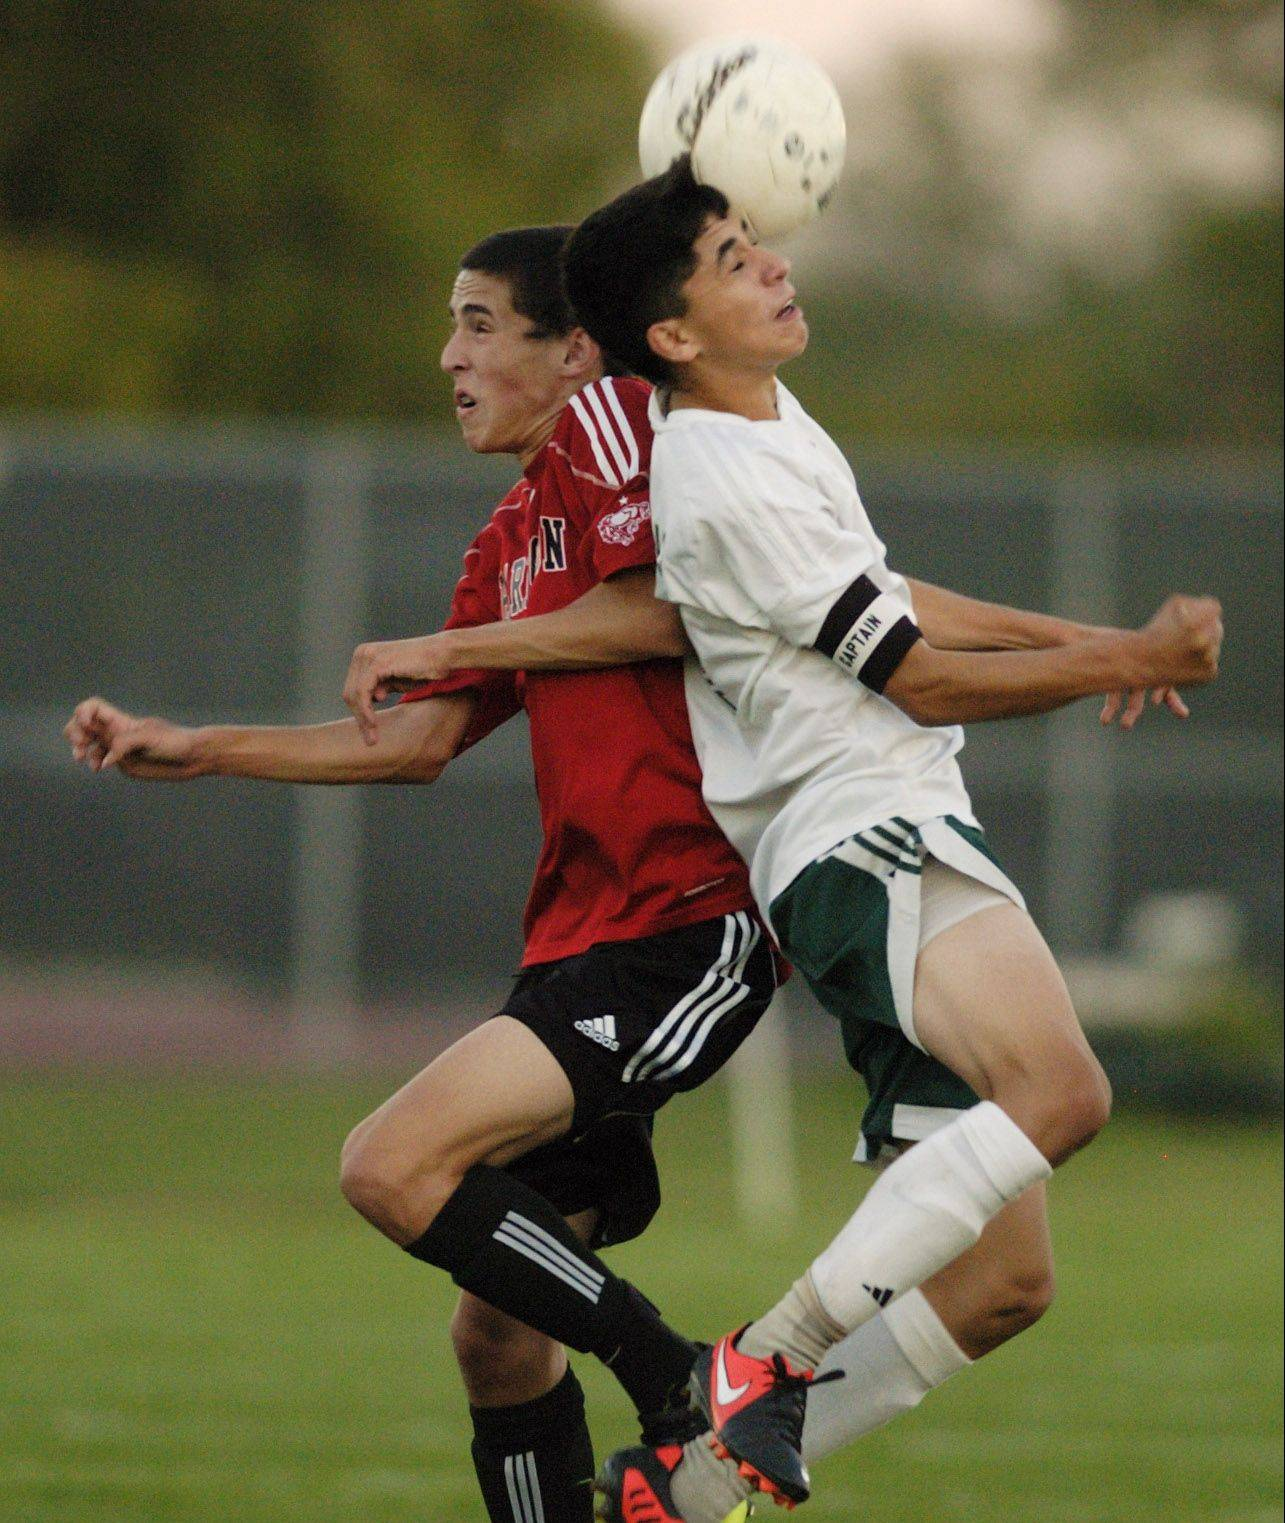 Barrington's Logan Morris, left, and Elk Grove's Gio Garcia leap for a header.